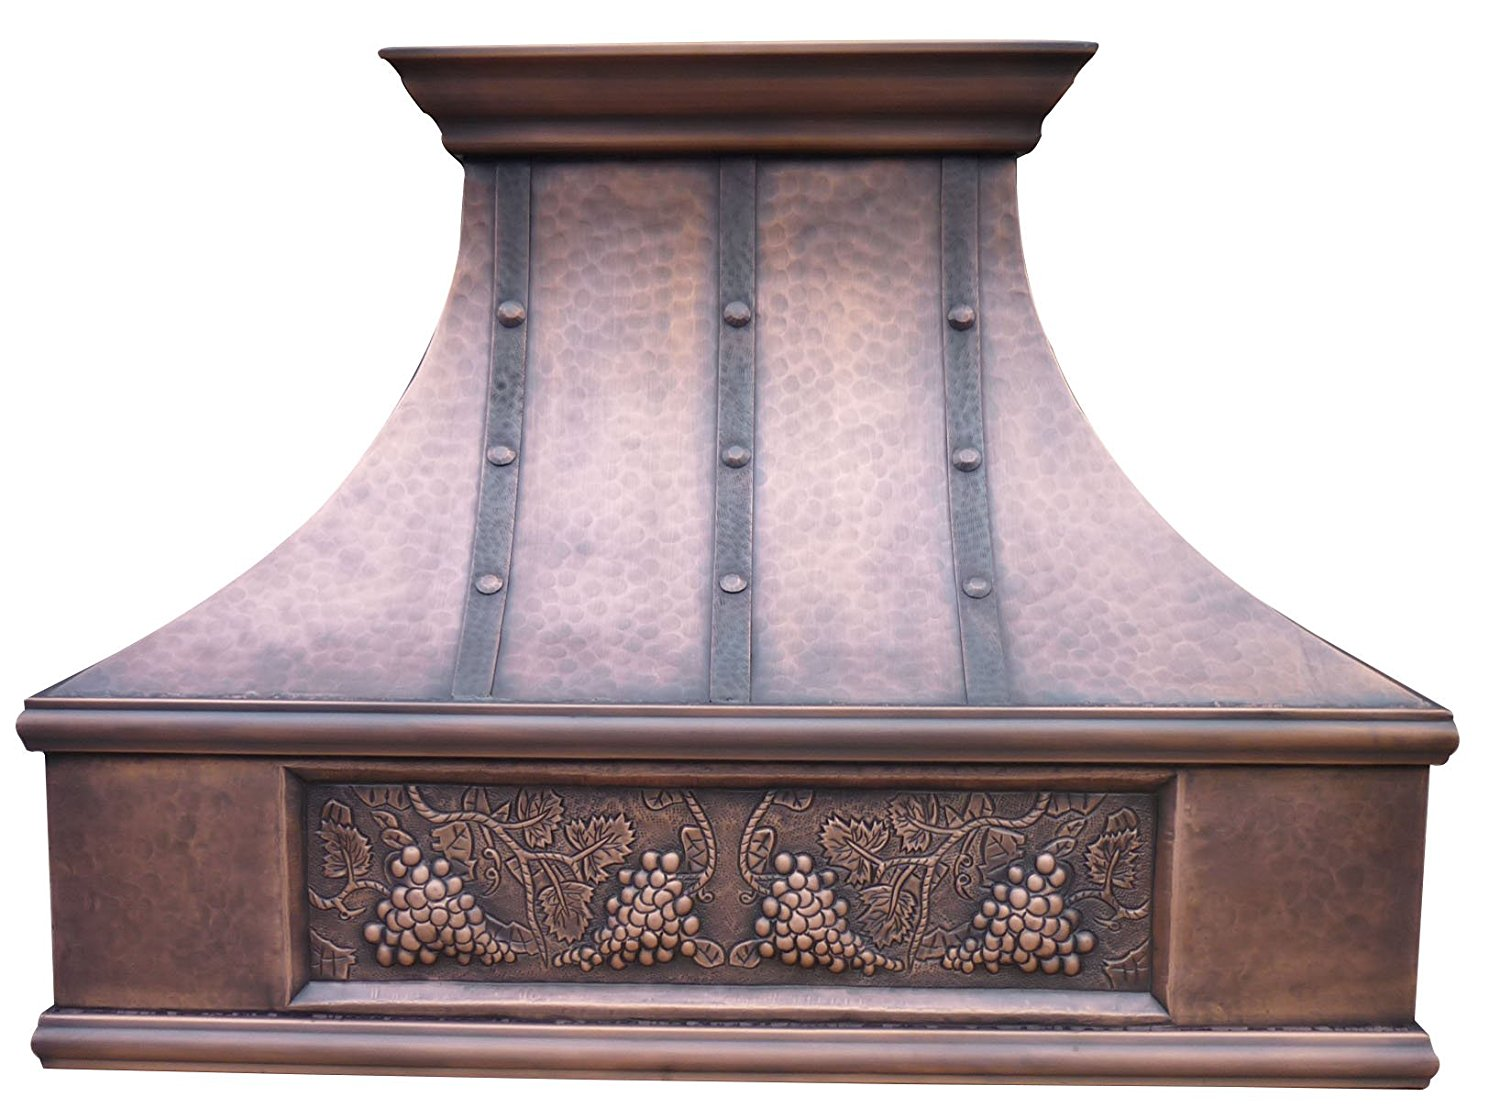 """Sinda Copper Range Hood with High Airflow Centrifugal Blower, Includes SUS 304 Liner and Baffle Filter, High CFM Vent Motor, Wall/Island / Ceiling Mount, Width 30,36,42,48 in (W48""""xH36""""Wall)"""